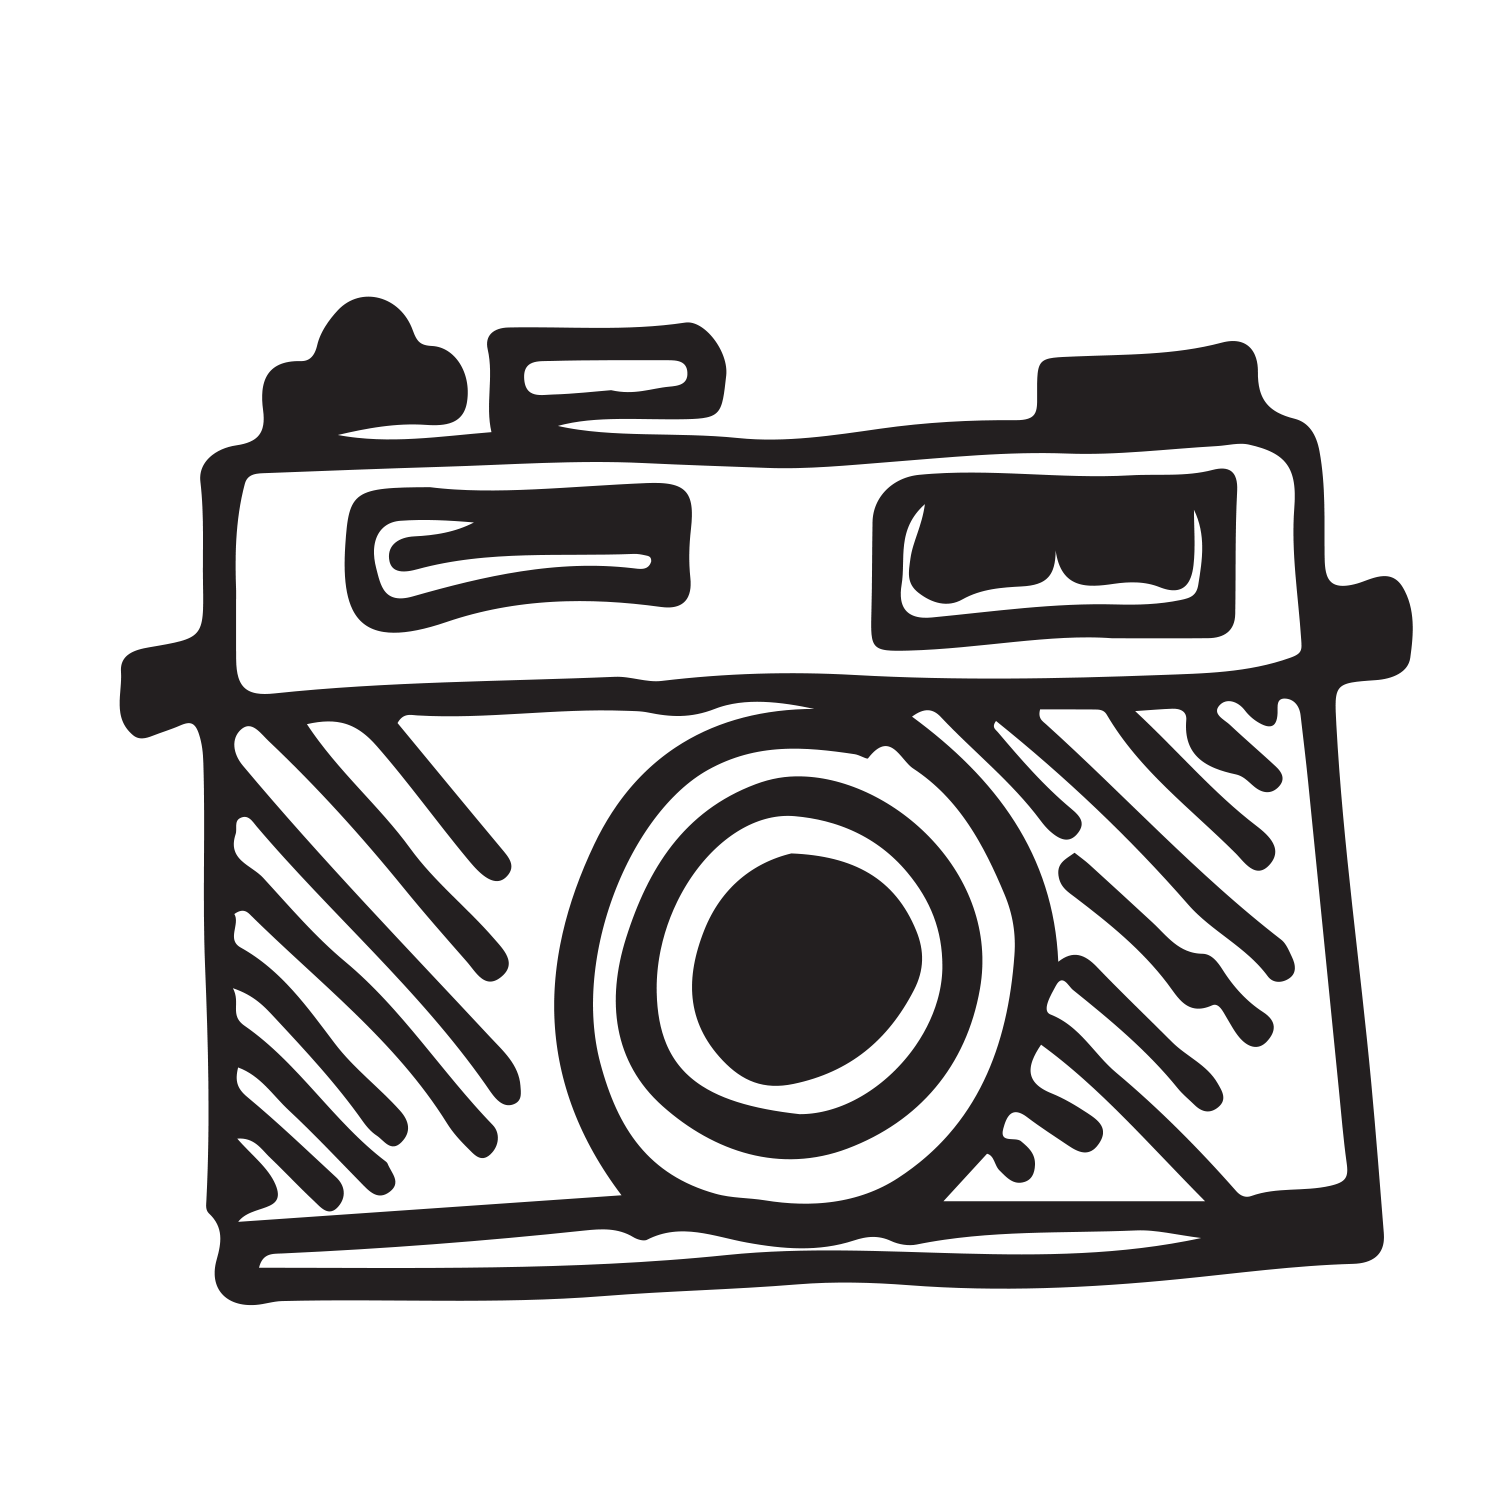 Photograph clipart color camera. The photographer finding light